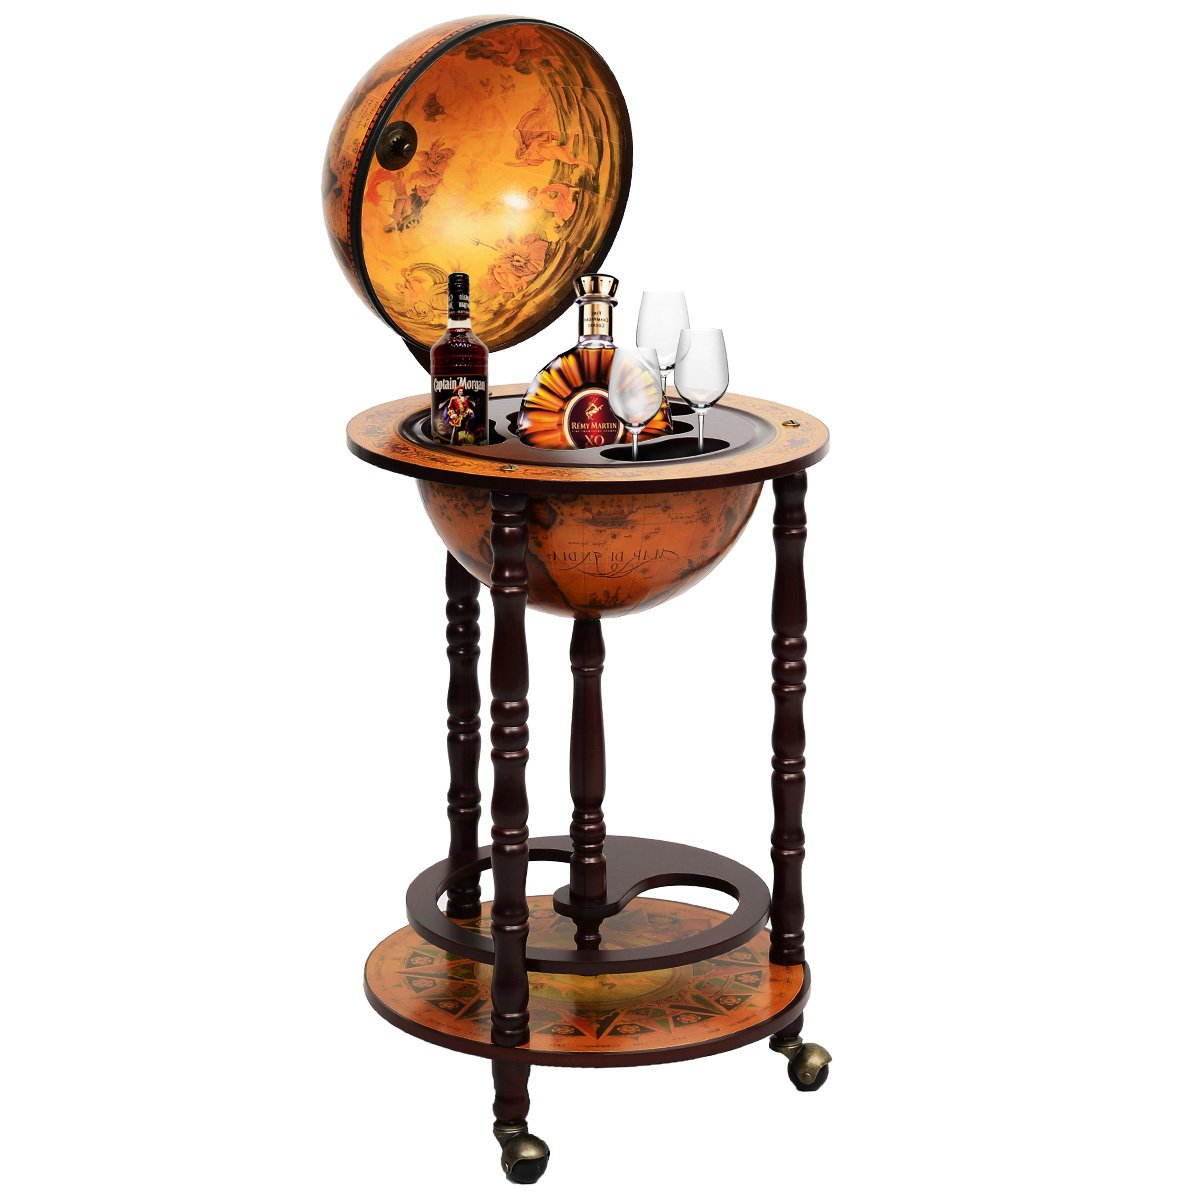 CASART 360MM Wood Globe Drink Cabinet Movable Double Deck Wine Bottle Beverage Storage Stand W/3 Wheels for Bar Kitchen Office Home